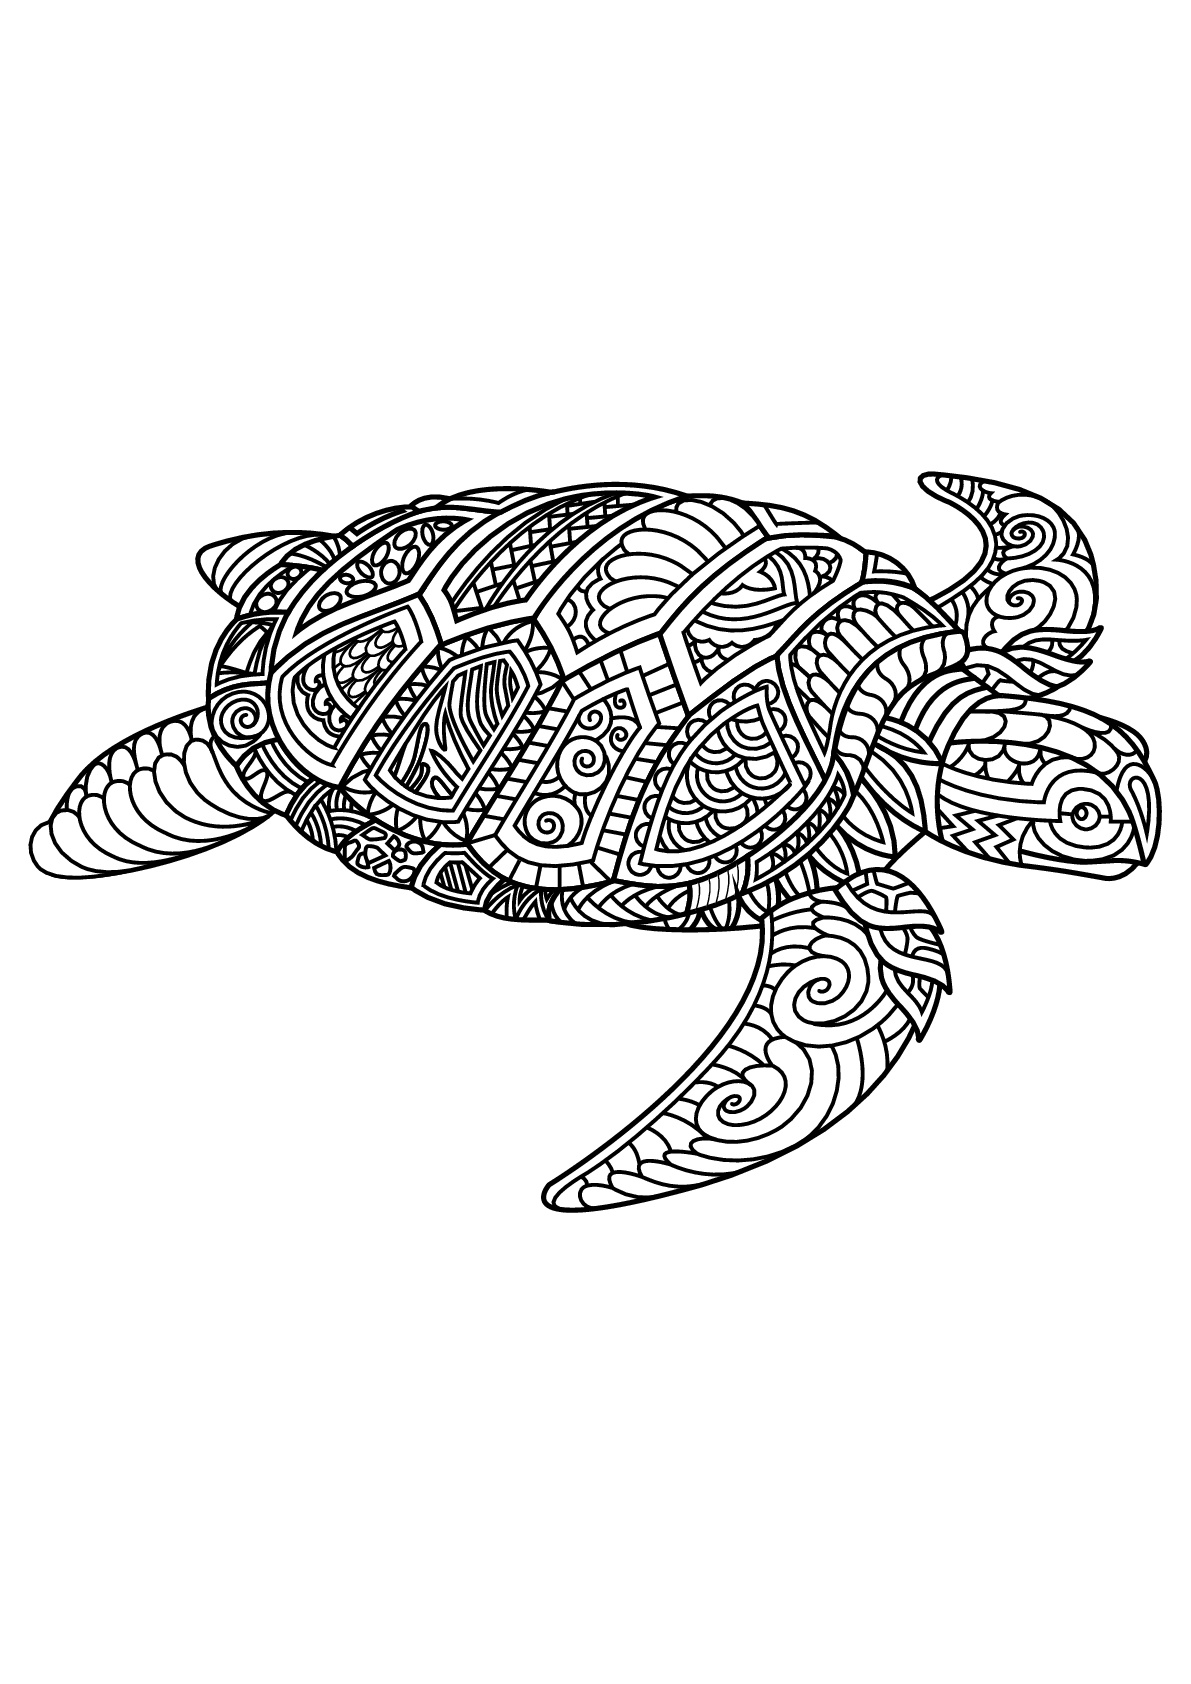 coloring pages for adults turtle free turtle coloring pages for adults printable to adults coloring pages turtle for